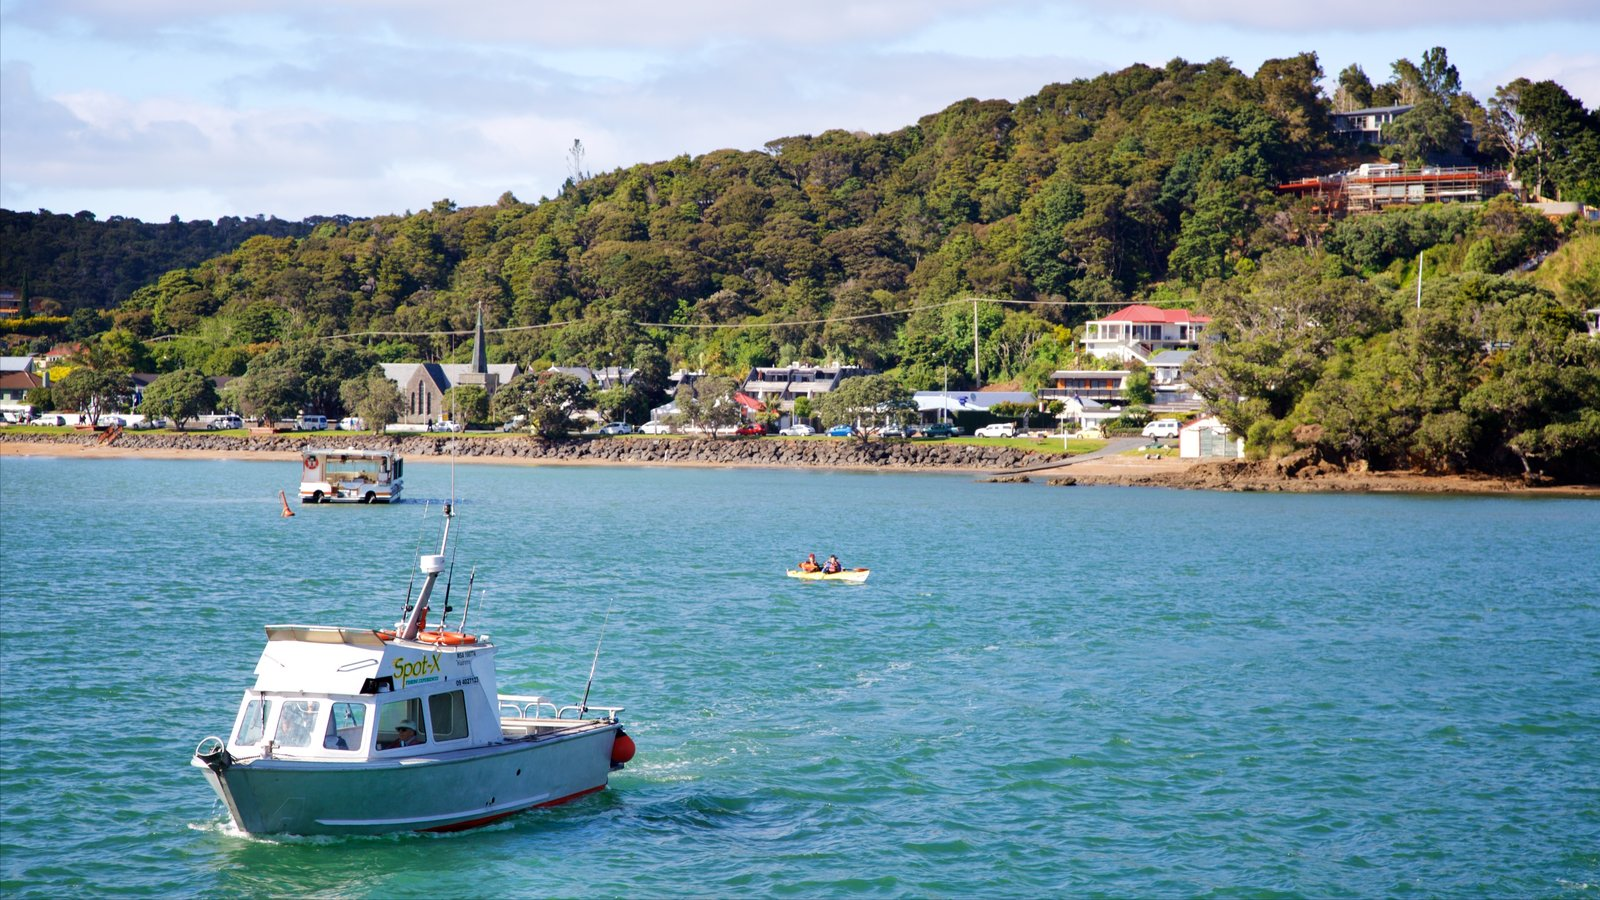 Paihia featuring a bay or harbor, a coastal town and boating